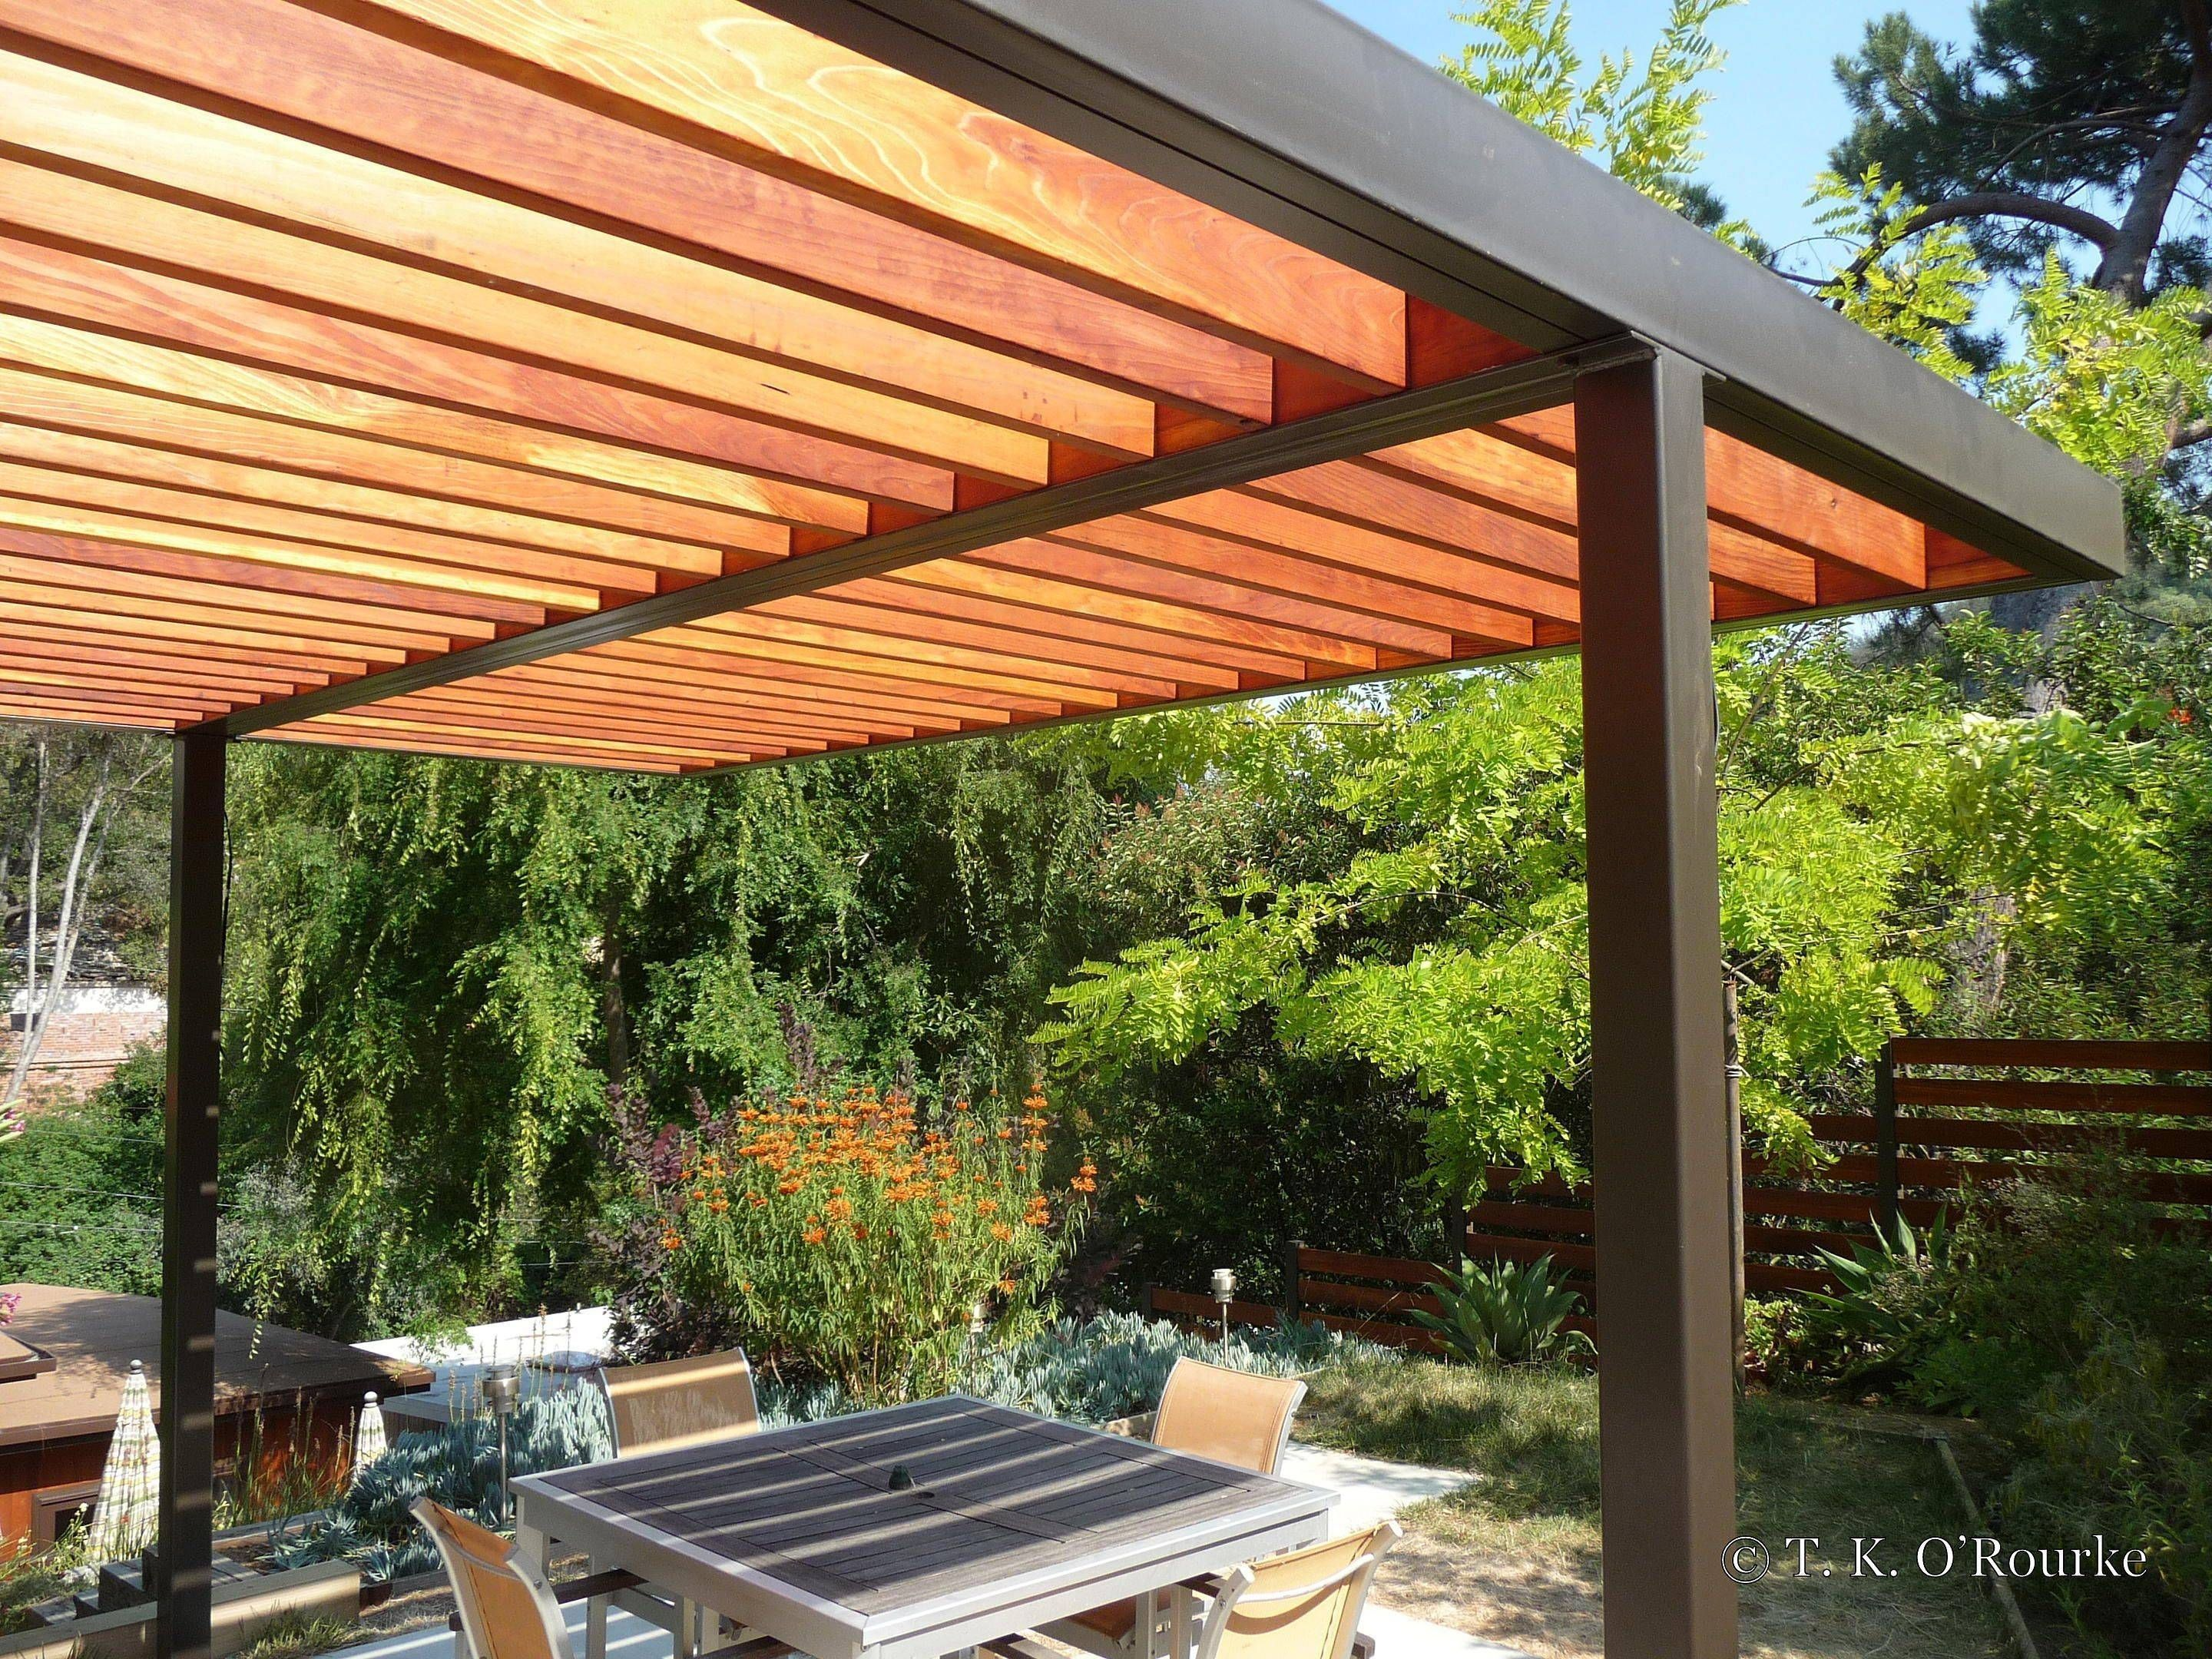 Vinyl Pergola Design , #wood #house #interieur #architect #living #instagood #k #lifestyle #m #you #o #photography #bhfyp #modern #interiorinspo #d #bedroom #all #fashion #deco #like #inspo #archilovers #kitchendesign #homedecoration #interiordecorating #homestyle #interiorinspiration #myhome #realestate